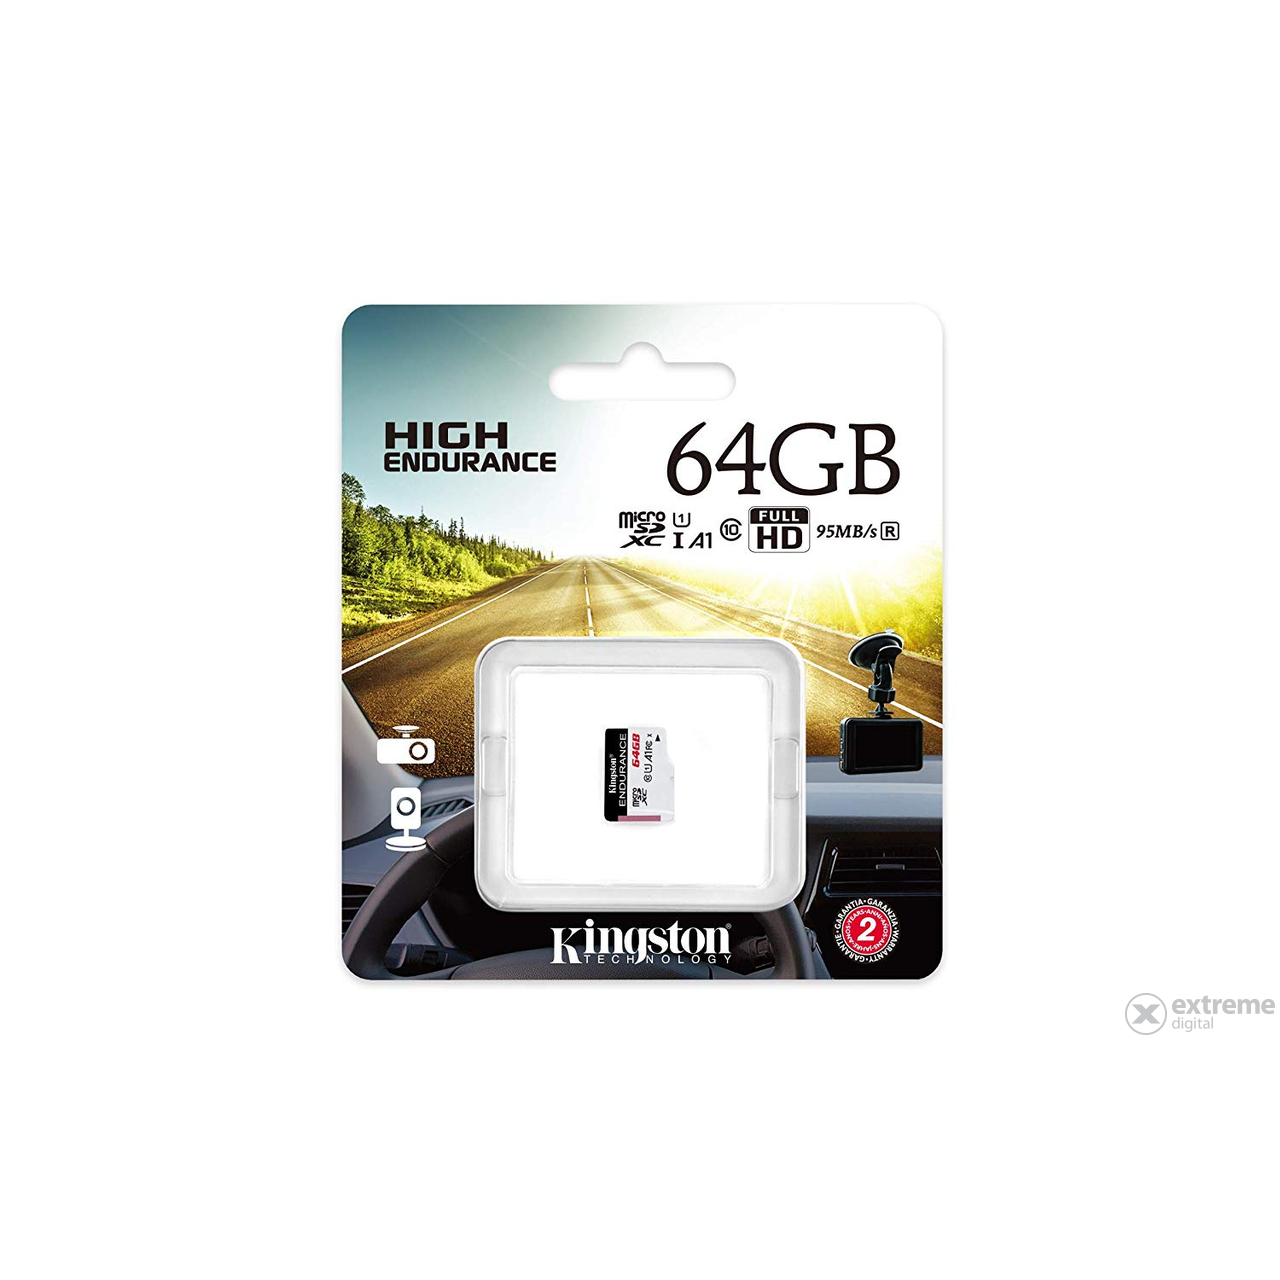 Kingston High Endurance 64GB microSDHC memóriakártya, Class 10, A1, UHS-I (SDCE/64GB)